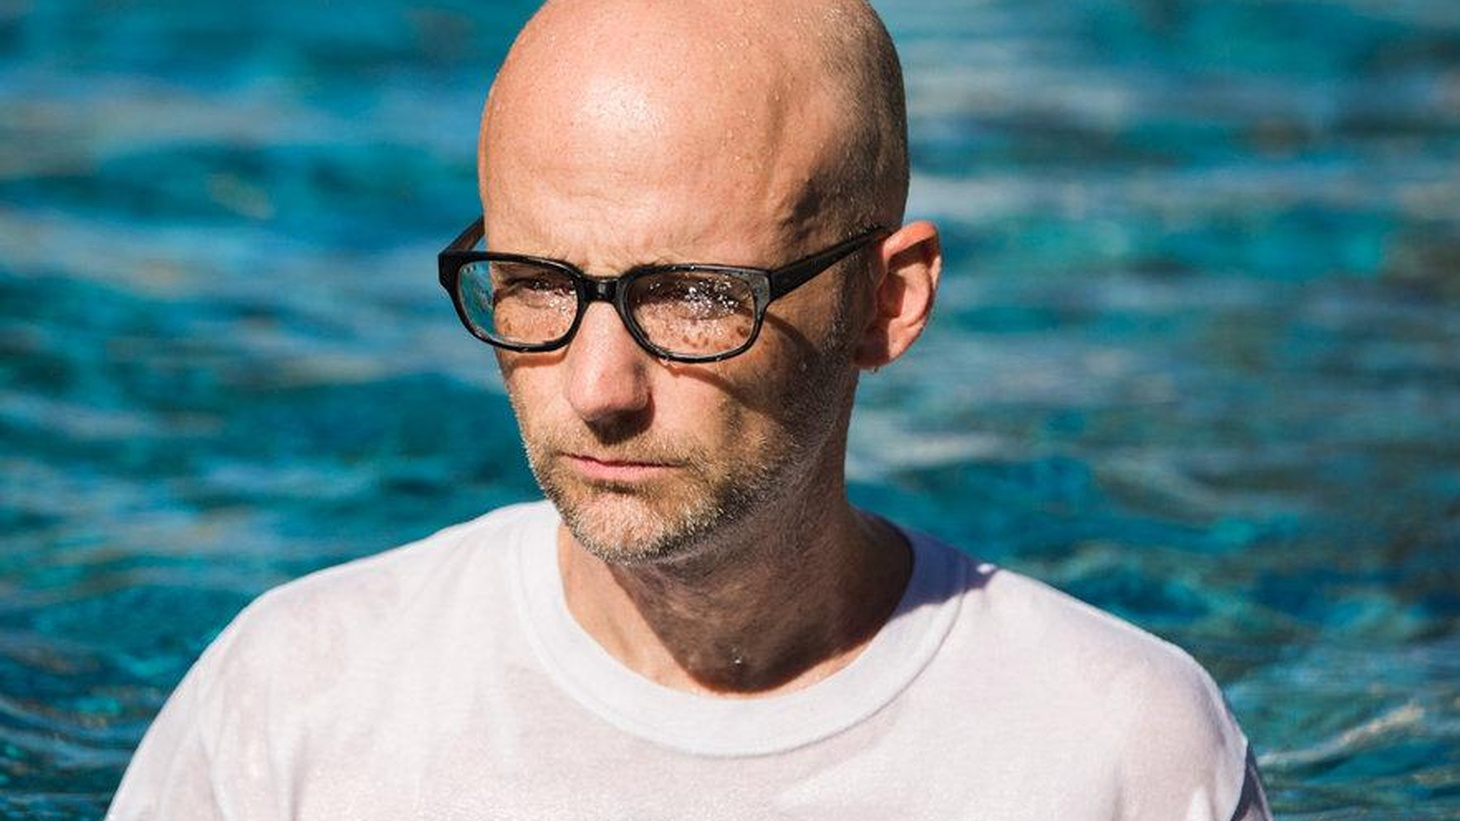 Moby's album Innocents is among his very best, and Today's Top Tune is a stand out...